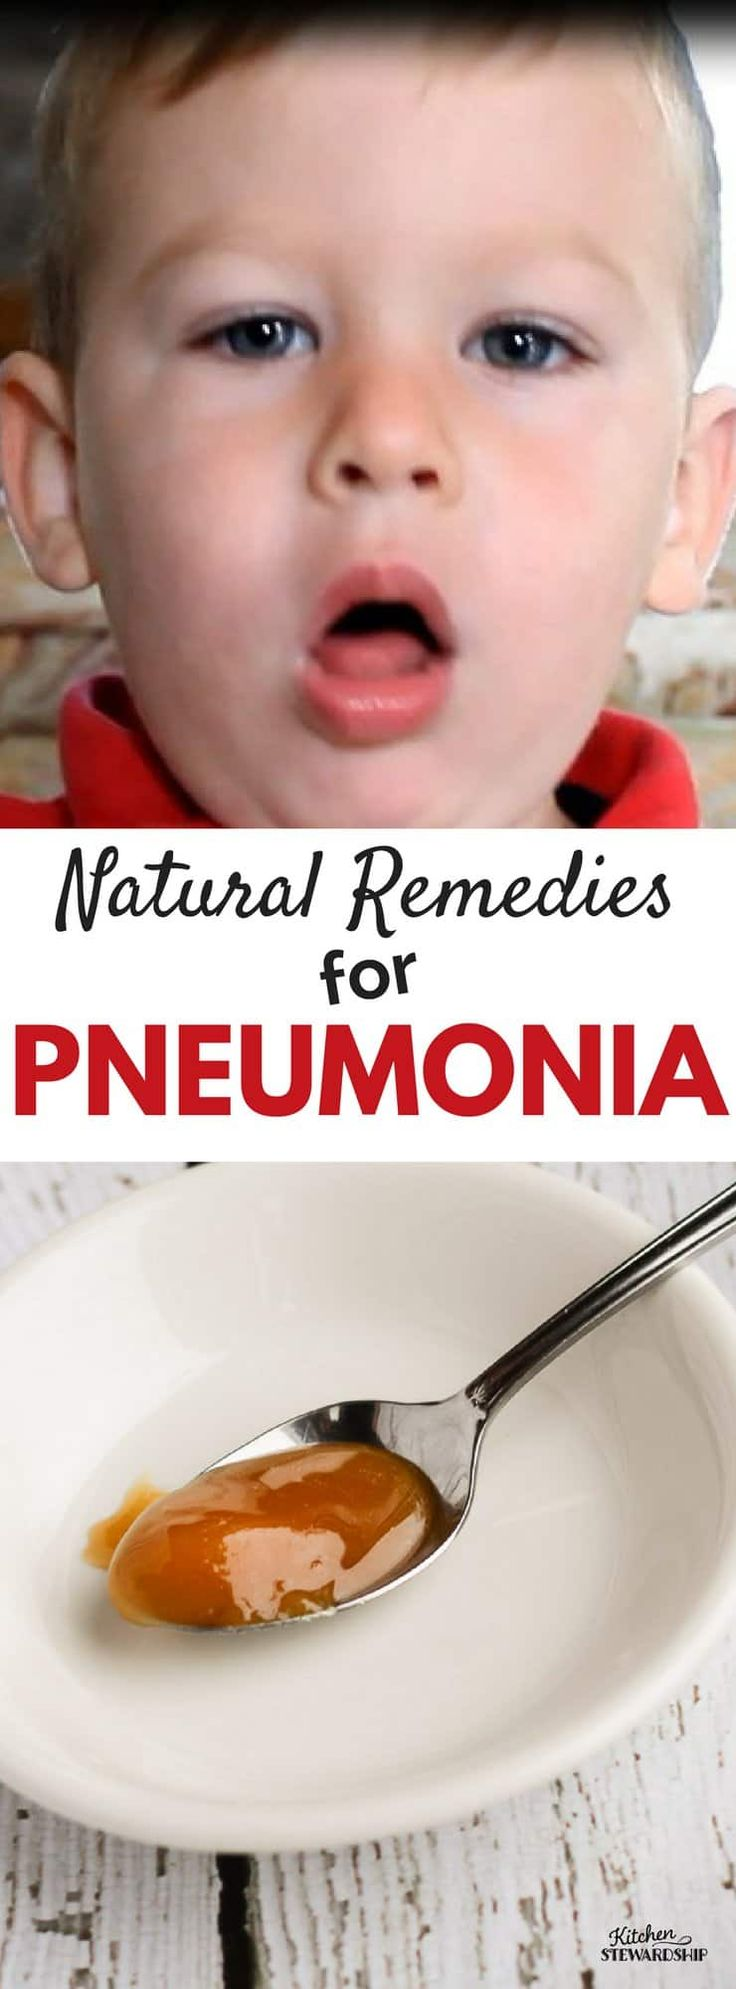 Symptoms & Home Remedies for pneumonia #remedy #pneumonia